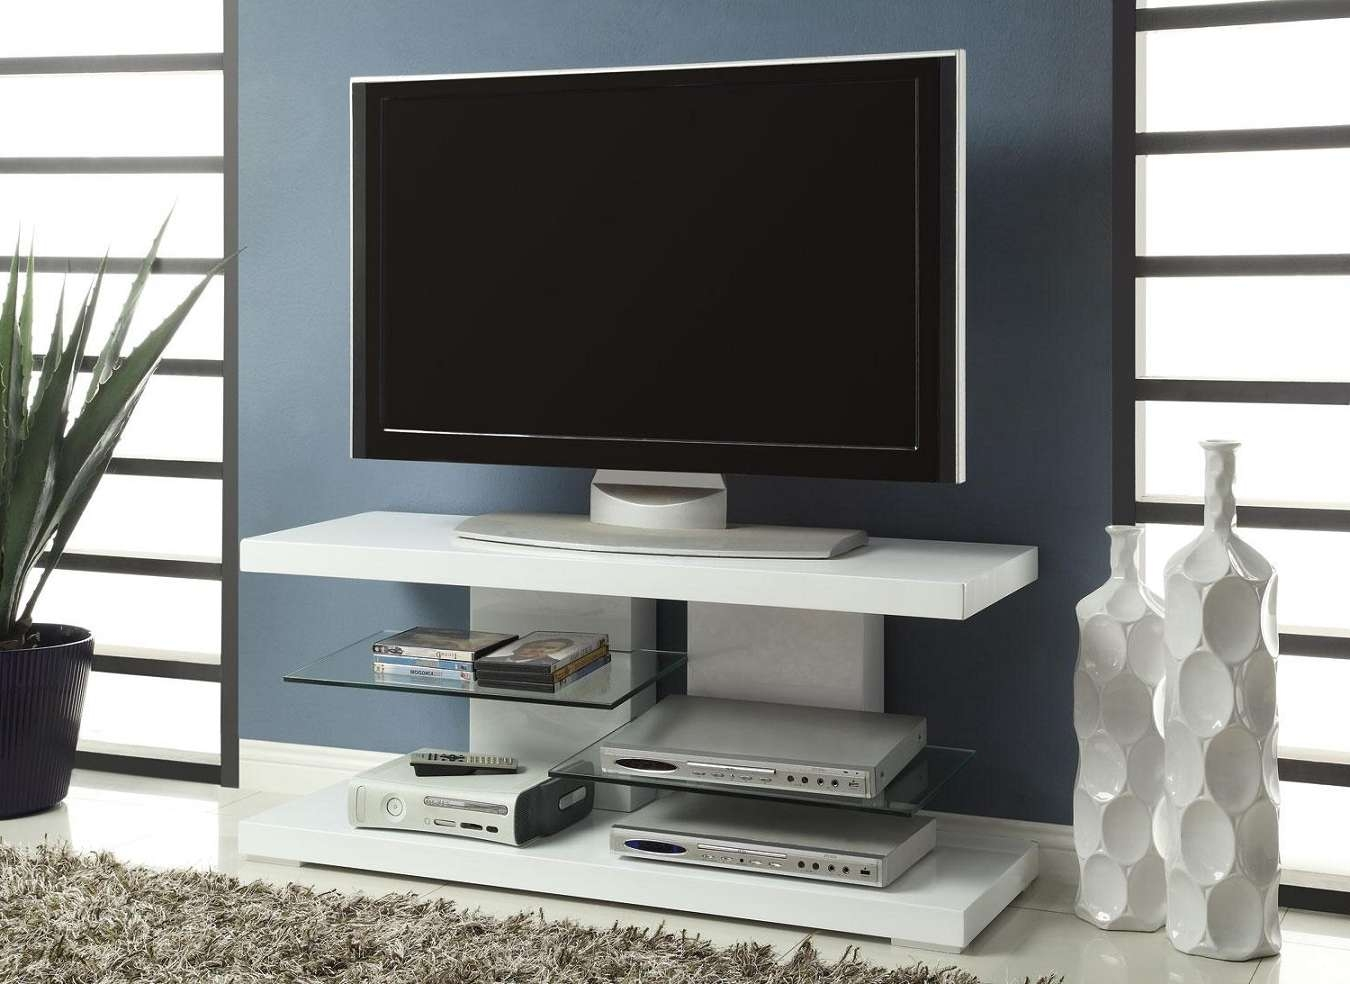 White Painted Plywood Flat Screen Tv Stand With Tempered Glass Intended For Modern Tv Cabinets For Flat Screens (View 20 of 20)